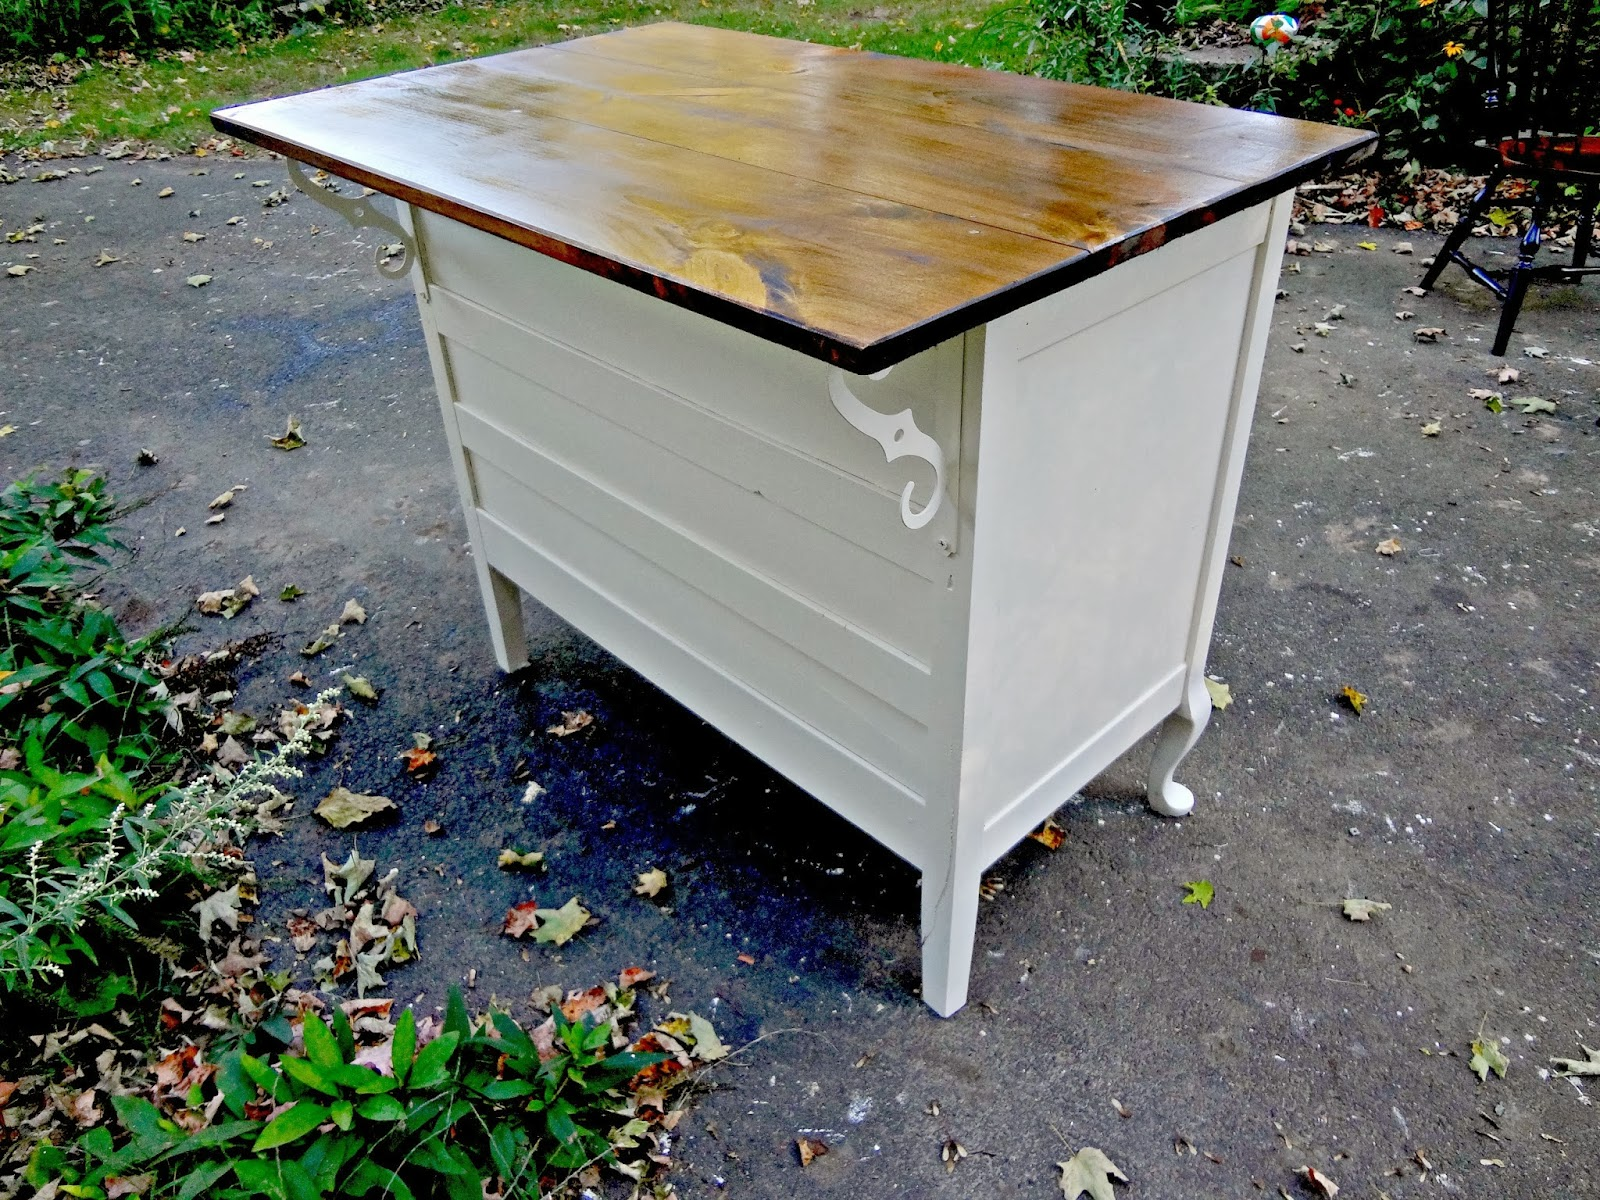 Heir and Space: Antique Dresser Turned Kitchen Island Diy Dresser Kitchen Island Ideas on diy kitchen cart ikea, diy painted dresser idea, cheap diy kitchen island idea, diy industrial kitchen island, diy kitchen decorating ideas,